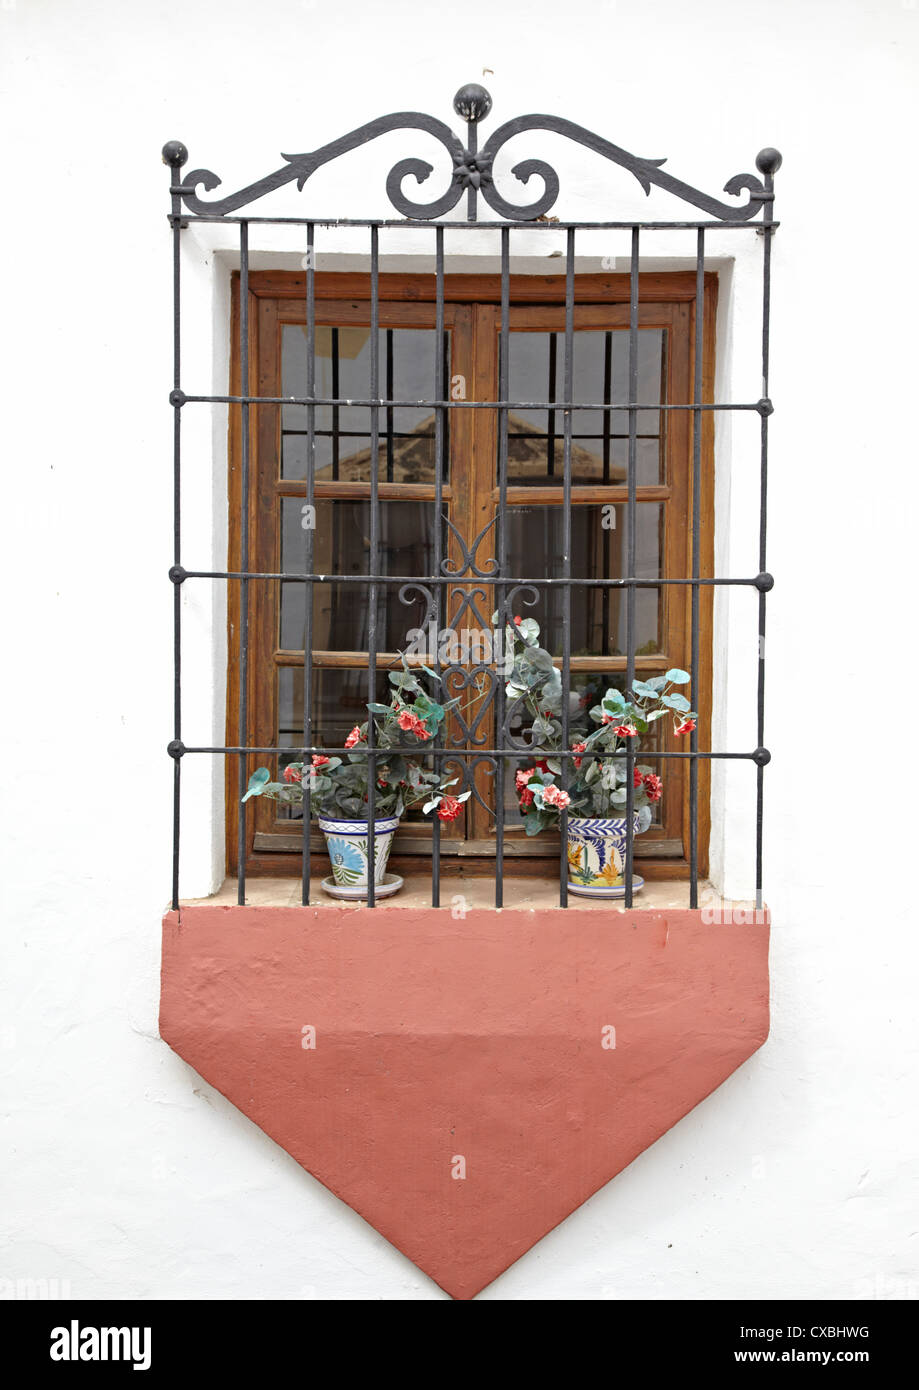 Window Box In Marbella Old Town Spain - Stock Image